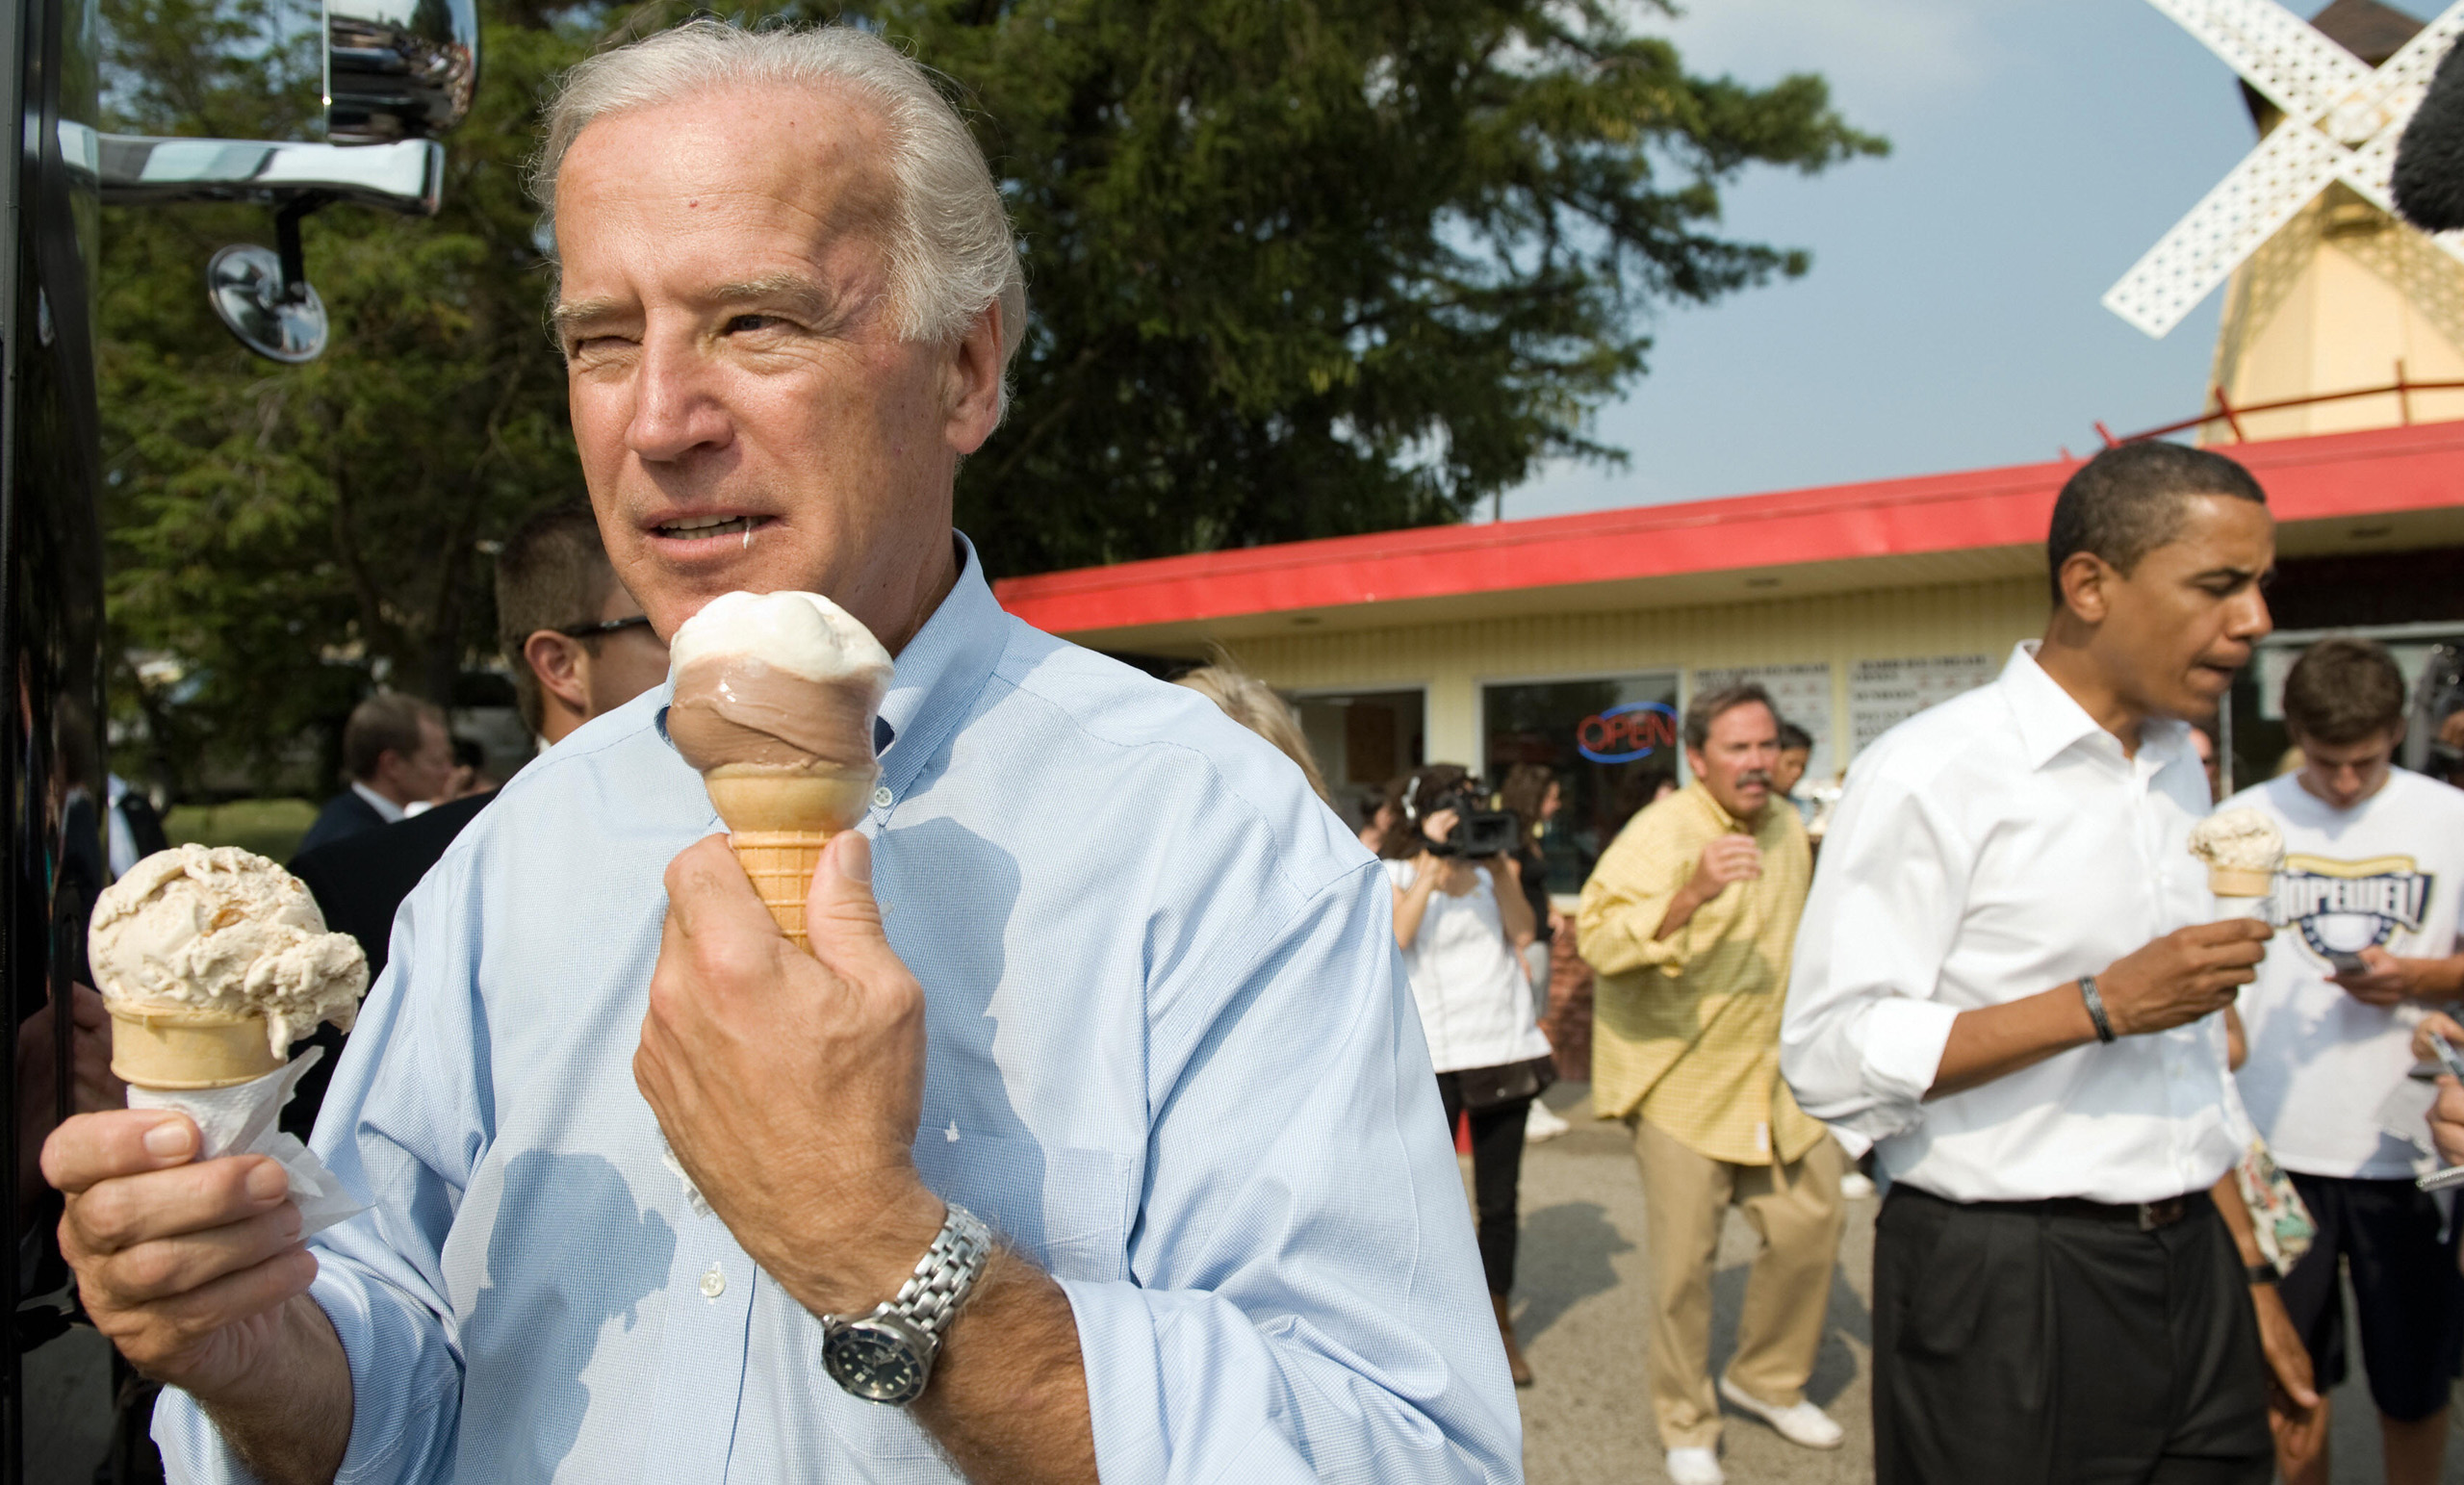 Vice presidential nominee Senator Joe Biden and Democratic presidential nominee Senator Barack Obama enjoy ice cream cones as they speak with local residents at the Windmill Ice Cream Shop in Aliquippa, Penns. on Aug. 29, 2008.